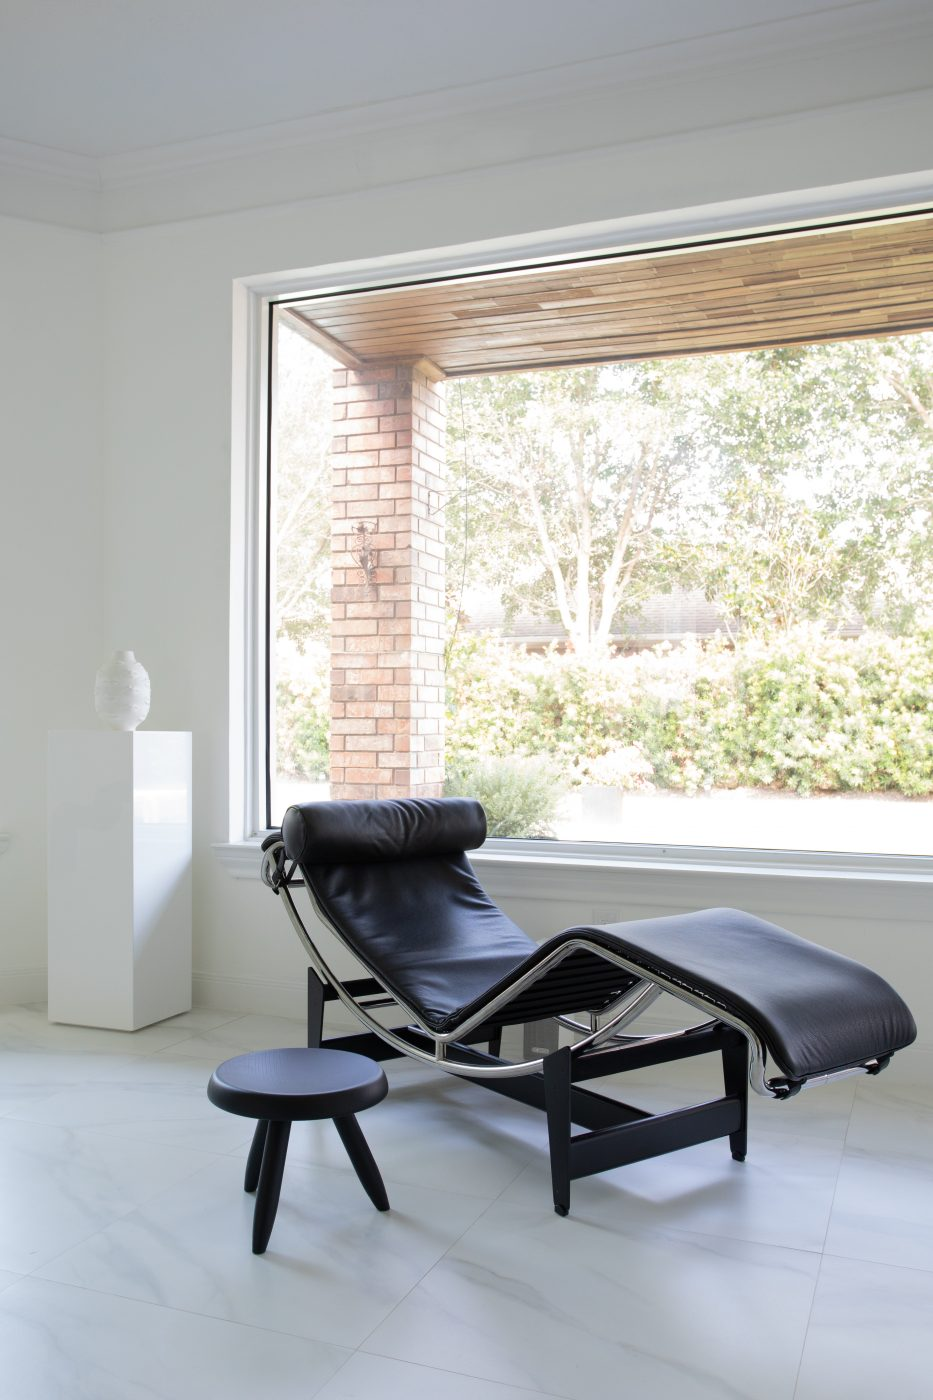 Recliner chair with side table in Mateo's Houston home